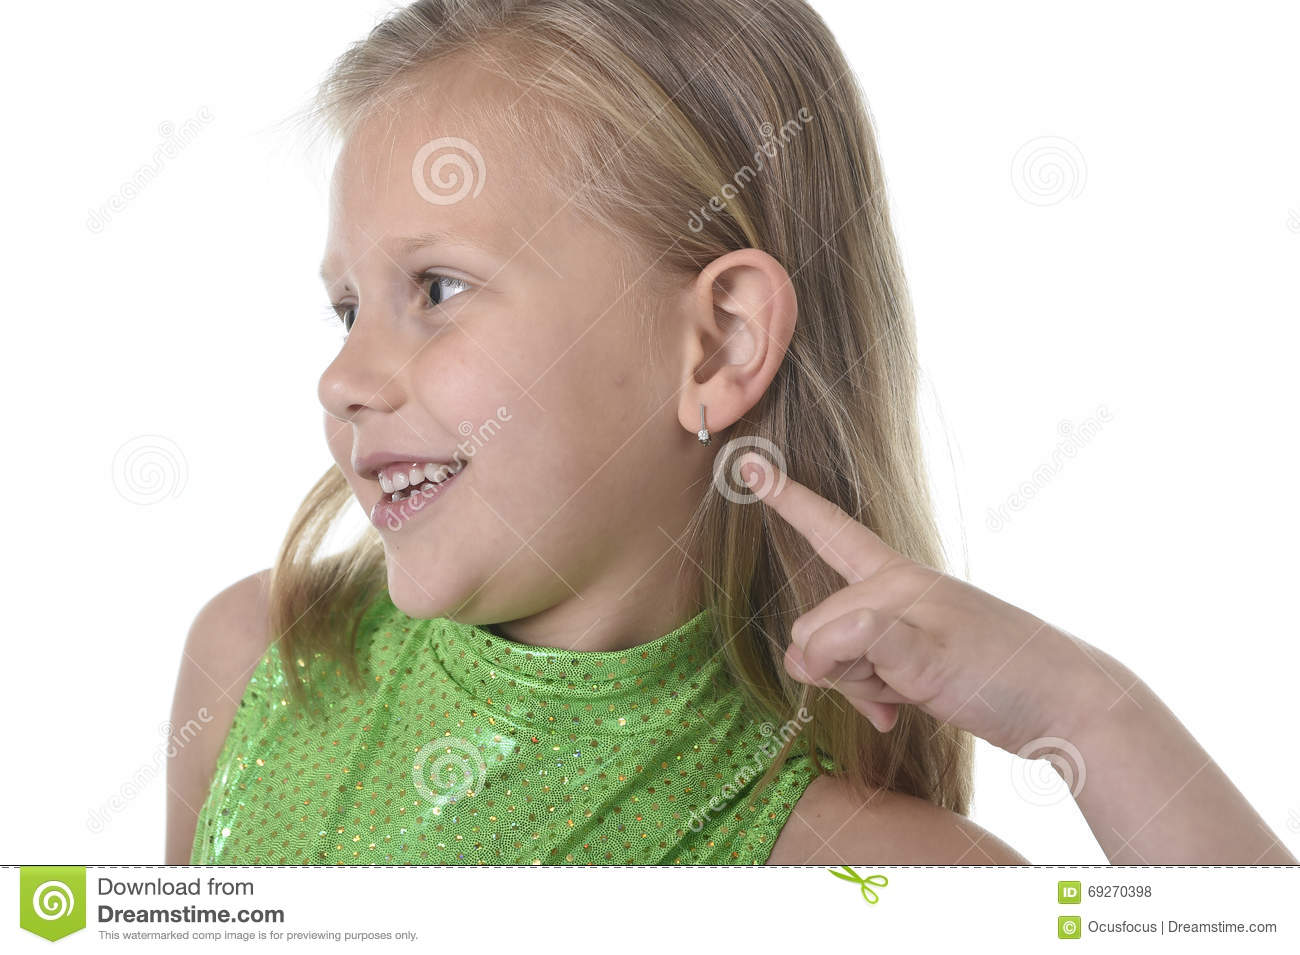 Cute little girl pointing her ear in body parts learning school chart serie